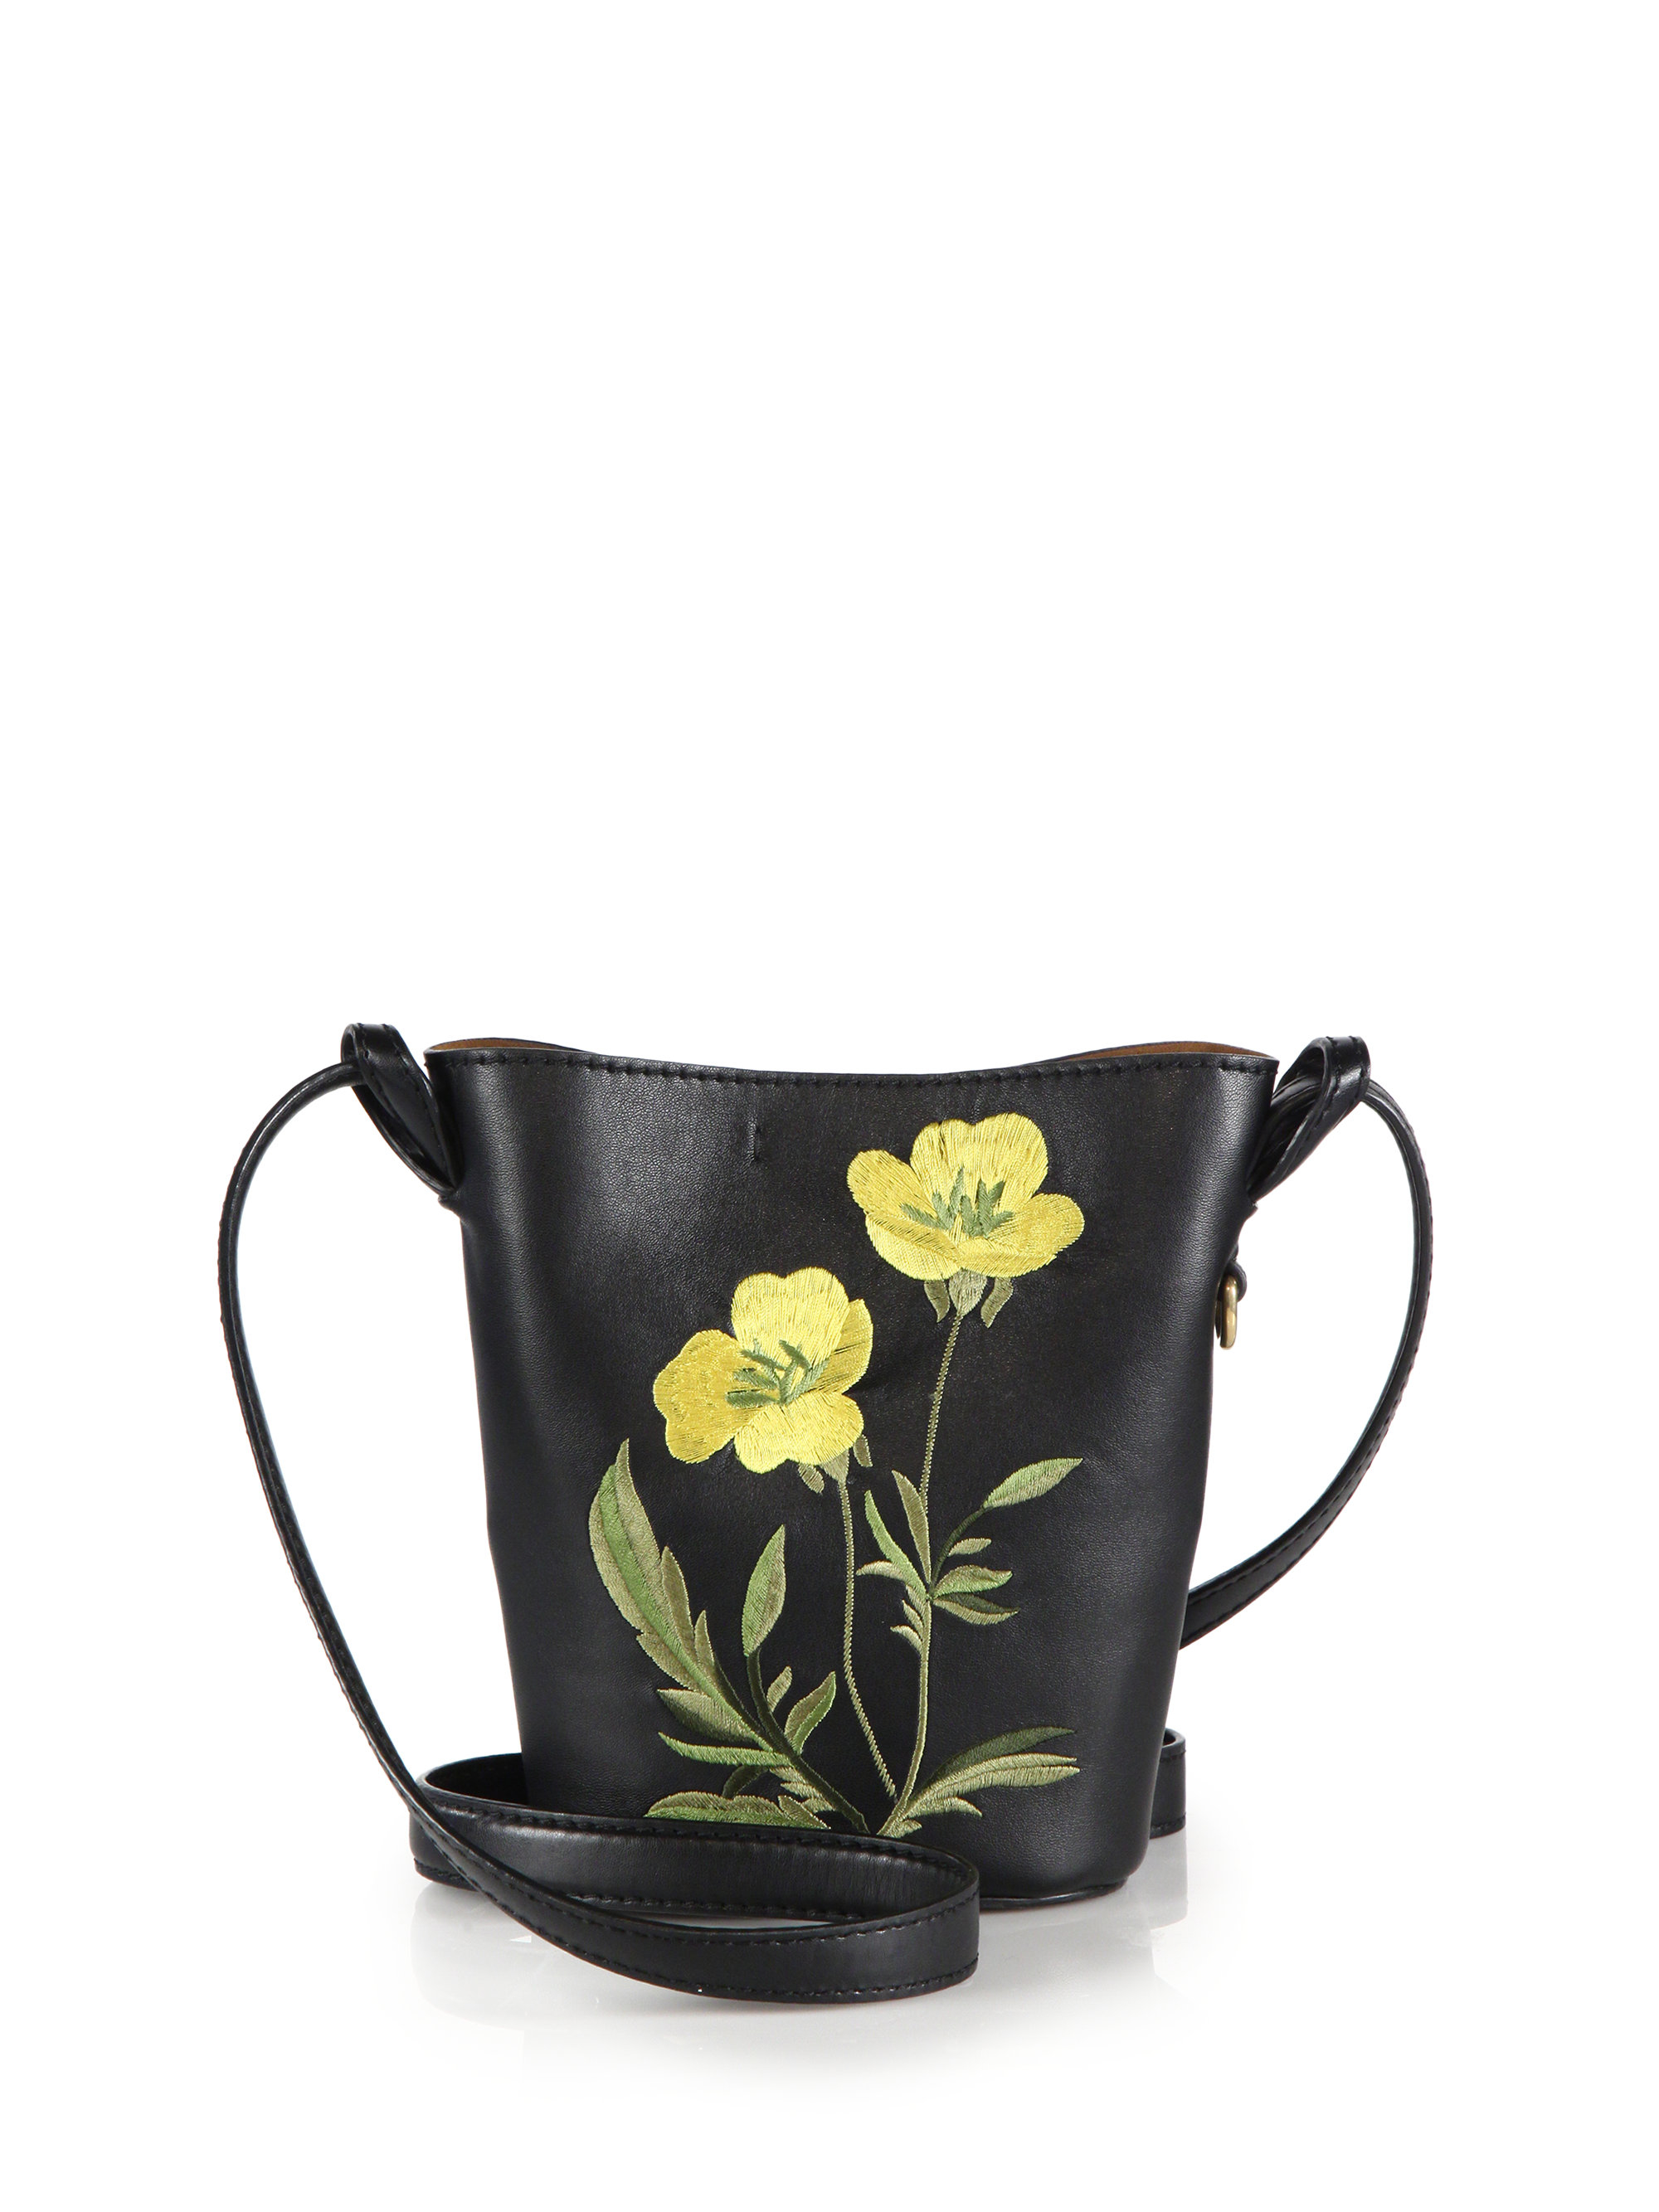 Lyst - Stella McCartney Small Faux Leather Floral-embroidered Bucket ... 5cd598a6bb1e5